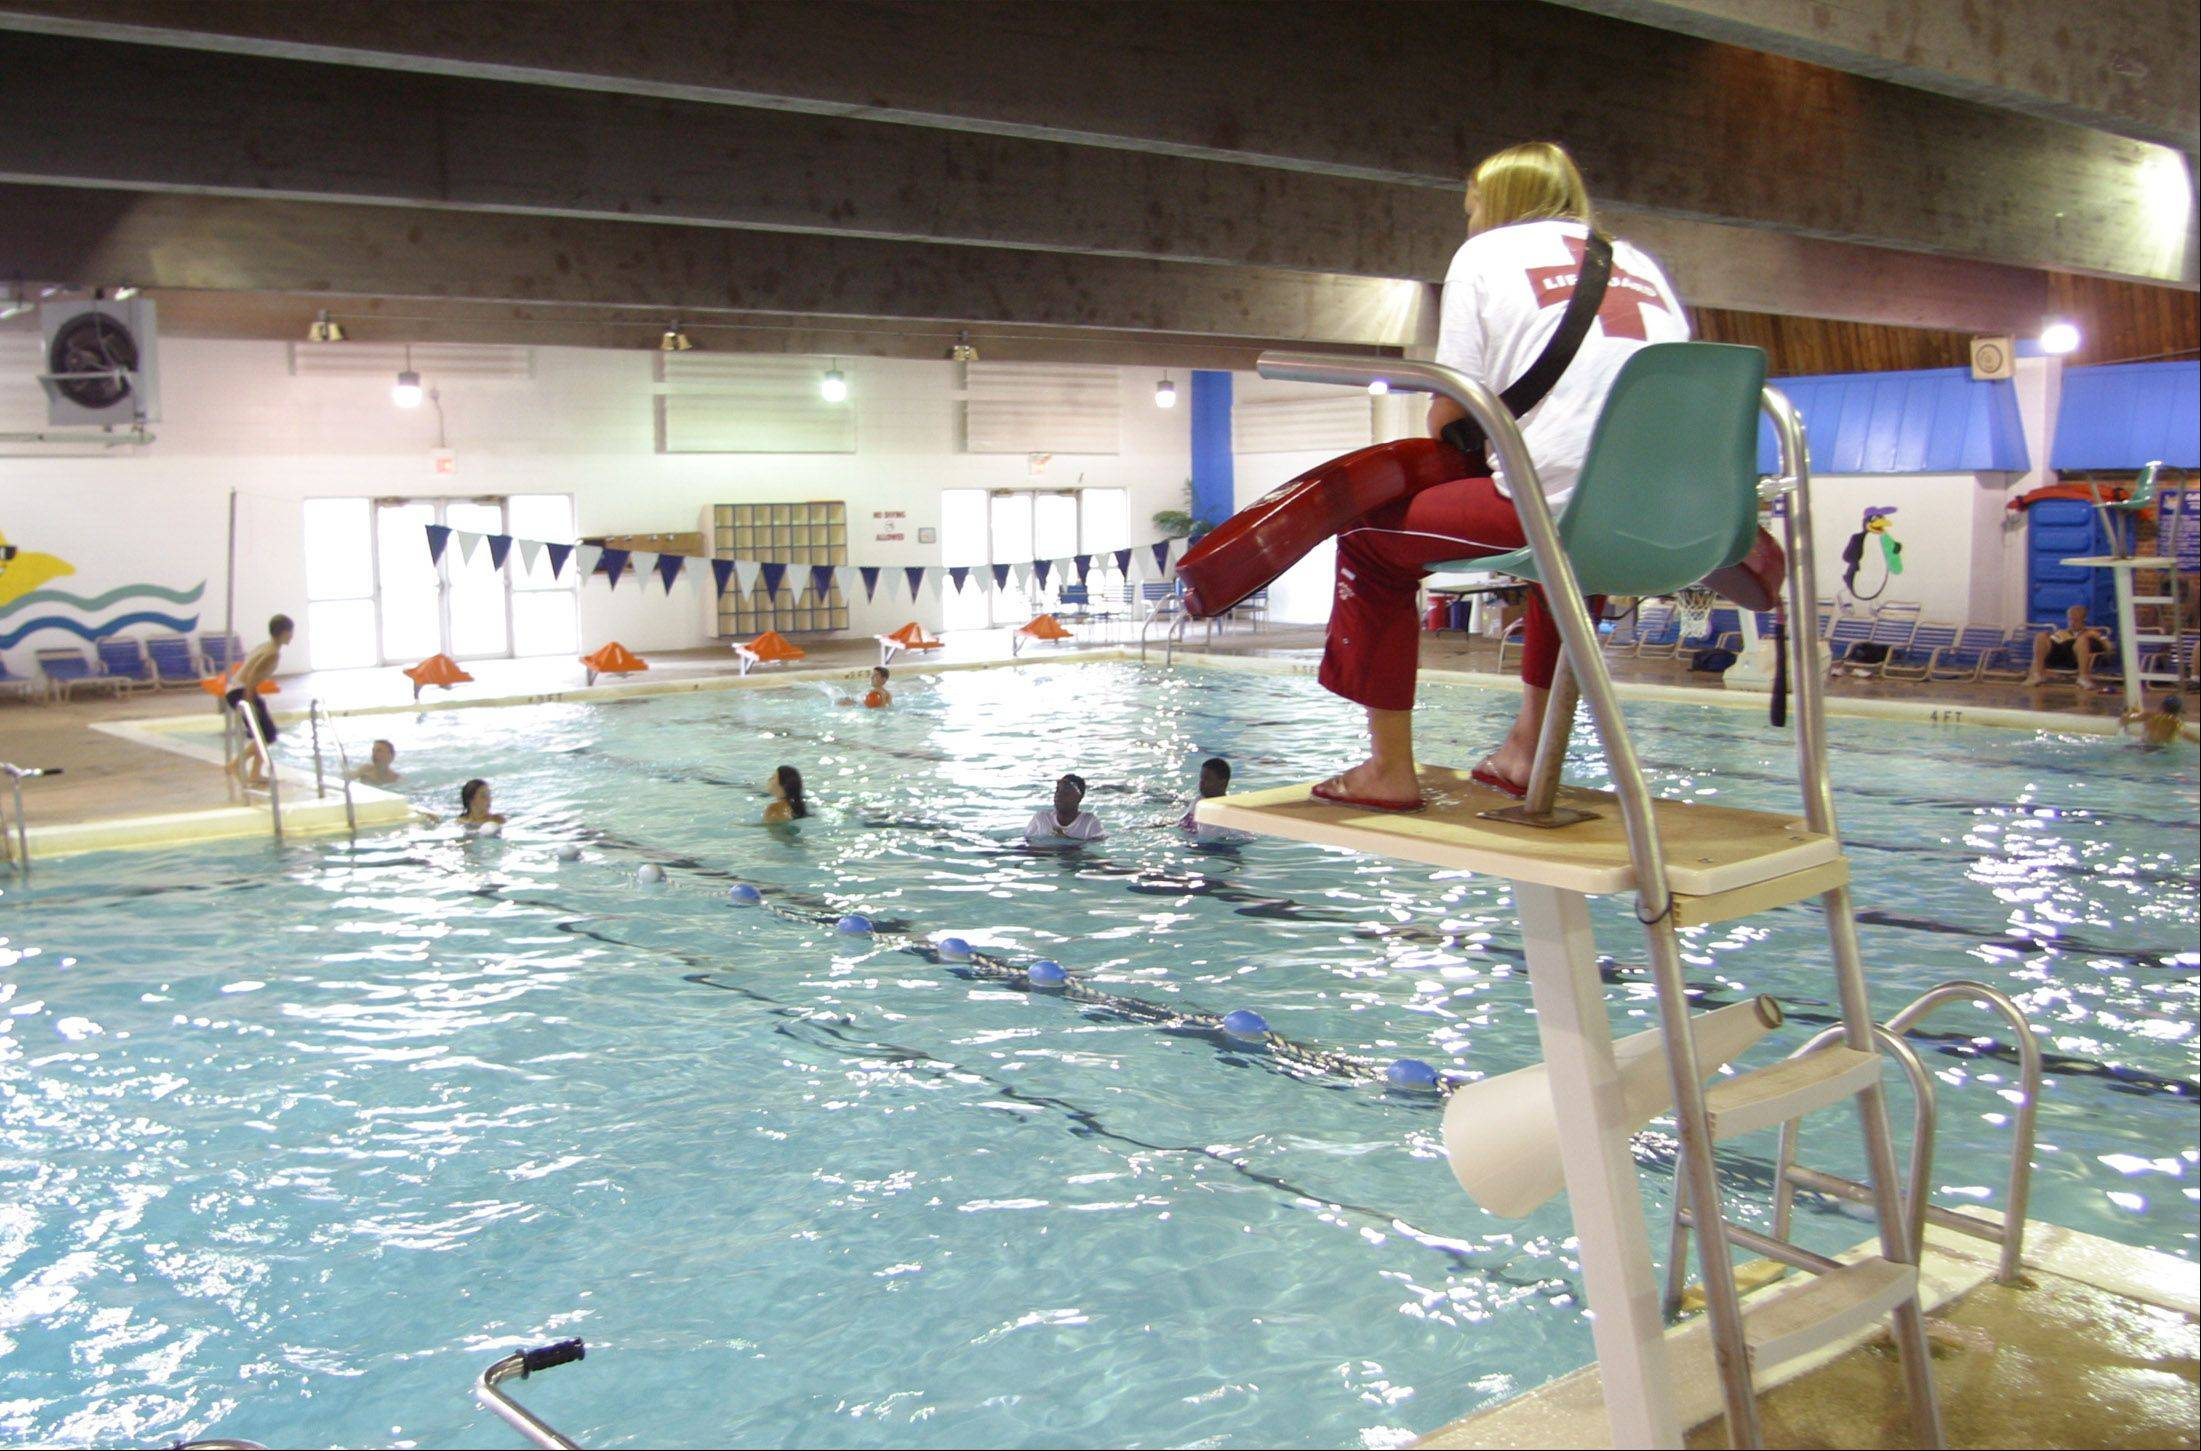 Collins Pool in Carol Stream closed in 2006 after leaks were discovered on the pool's deck.